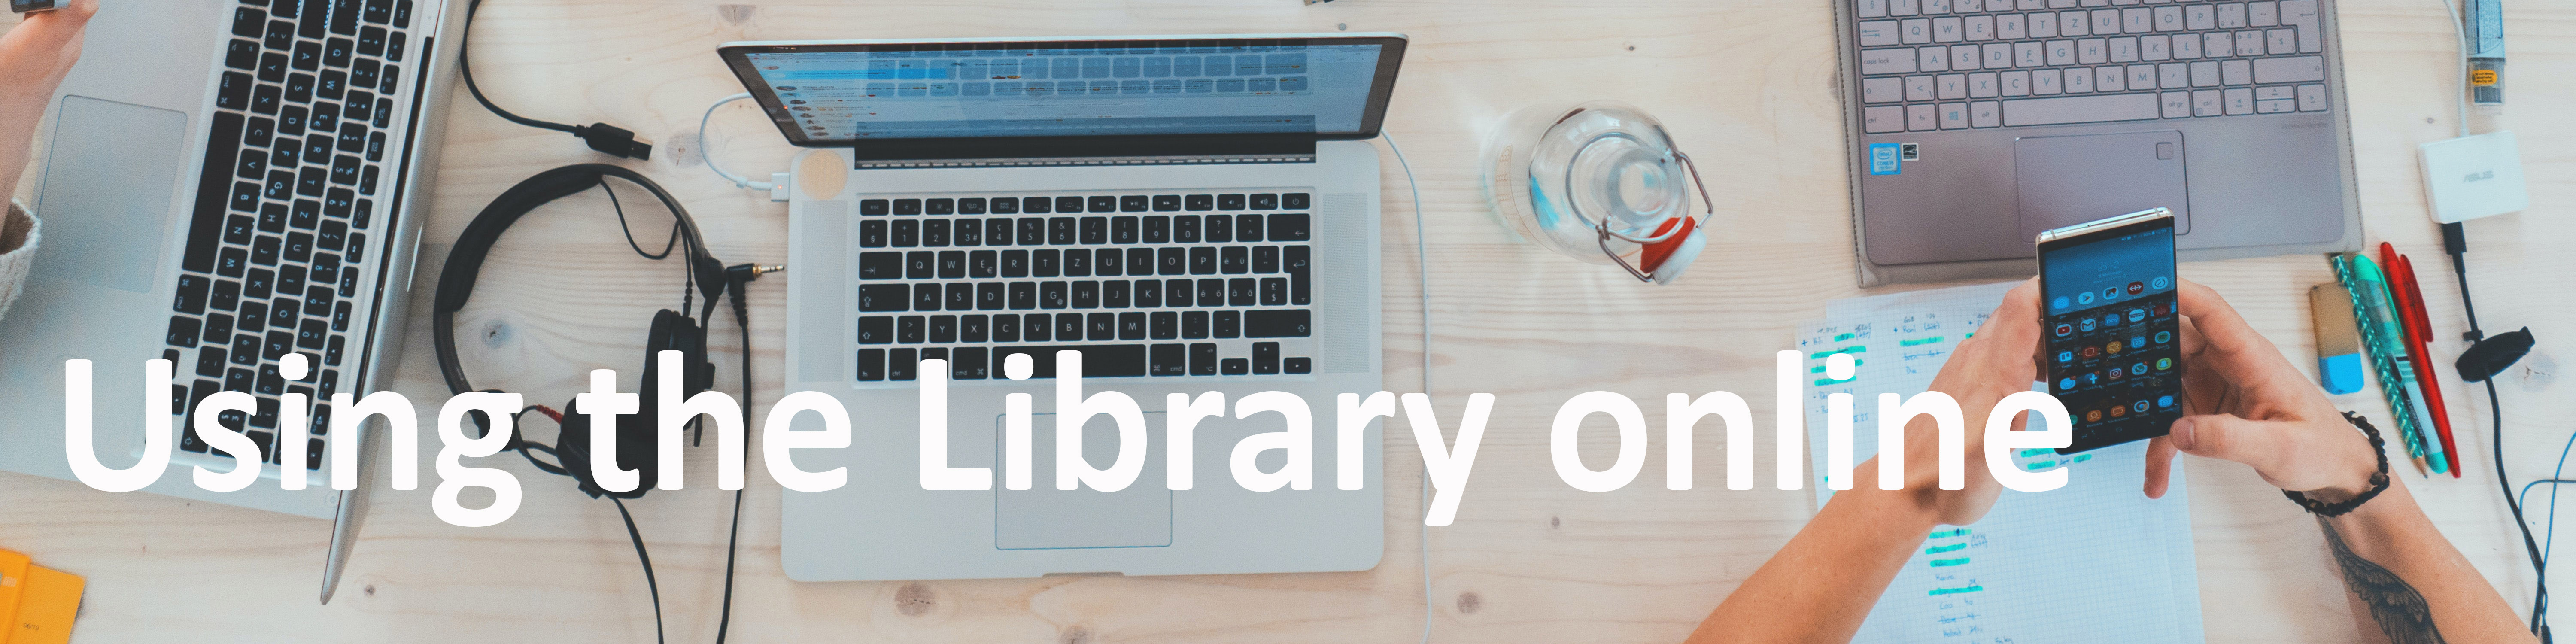 Find out about using the Library online